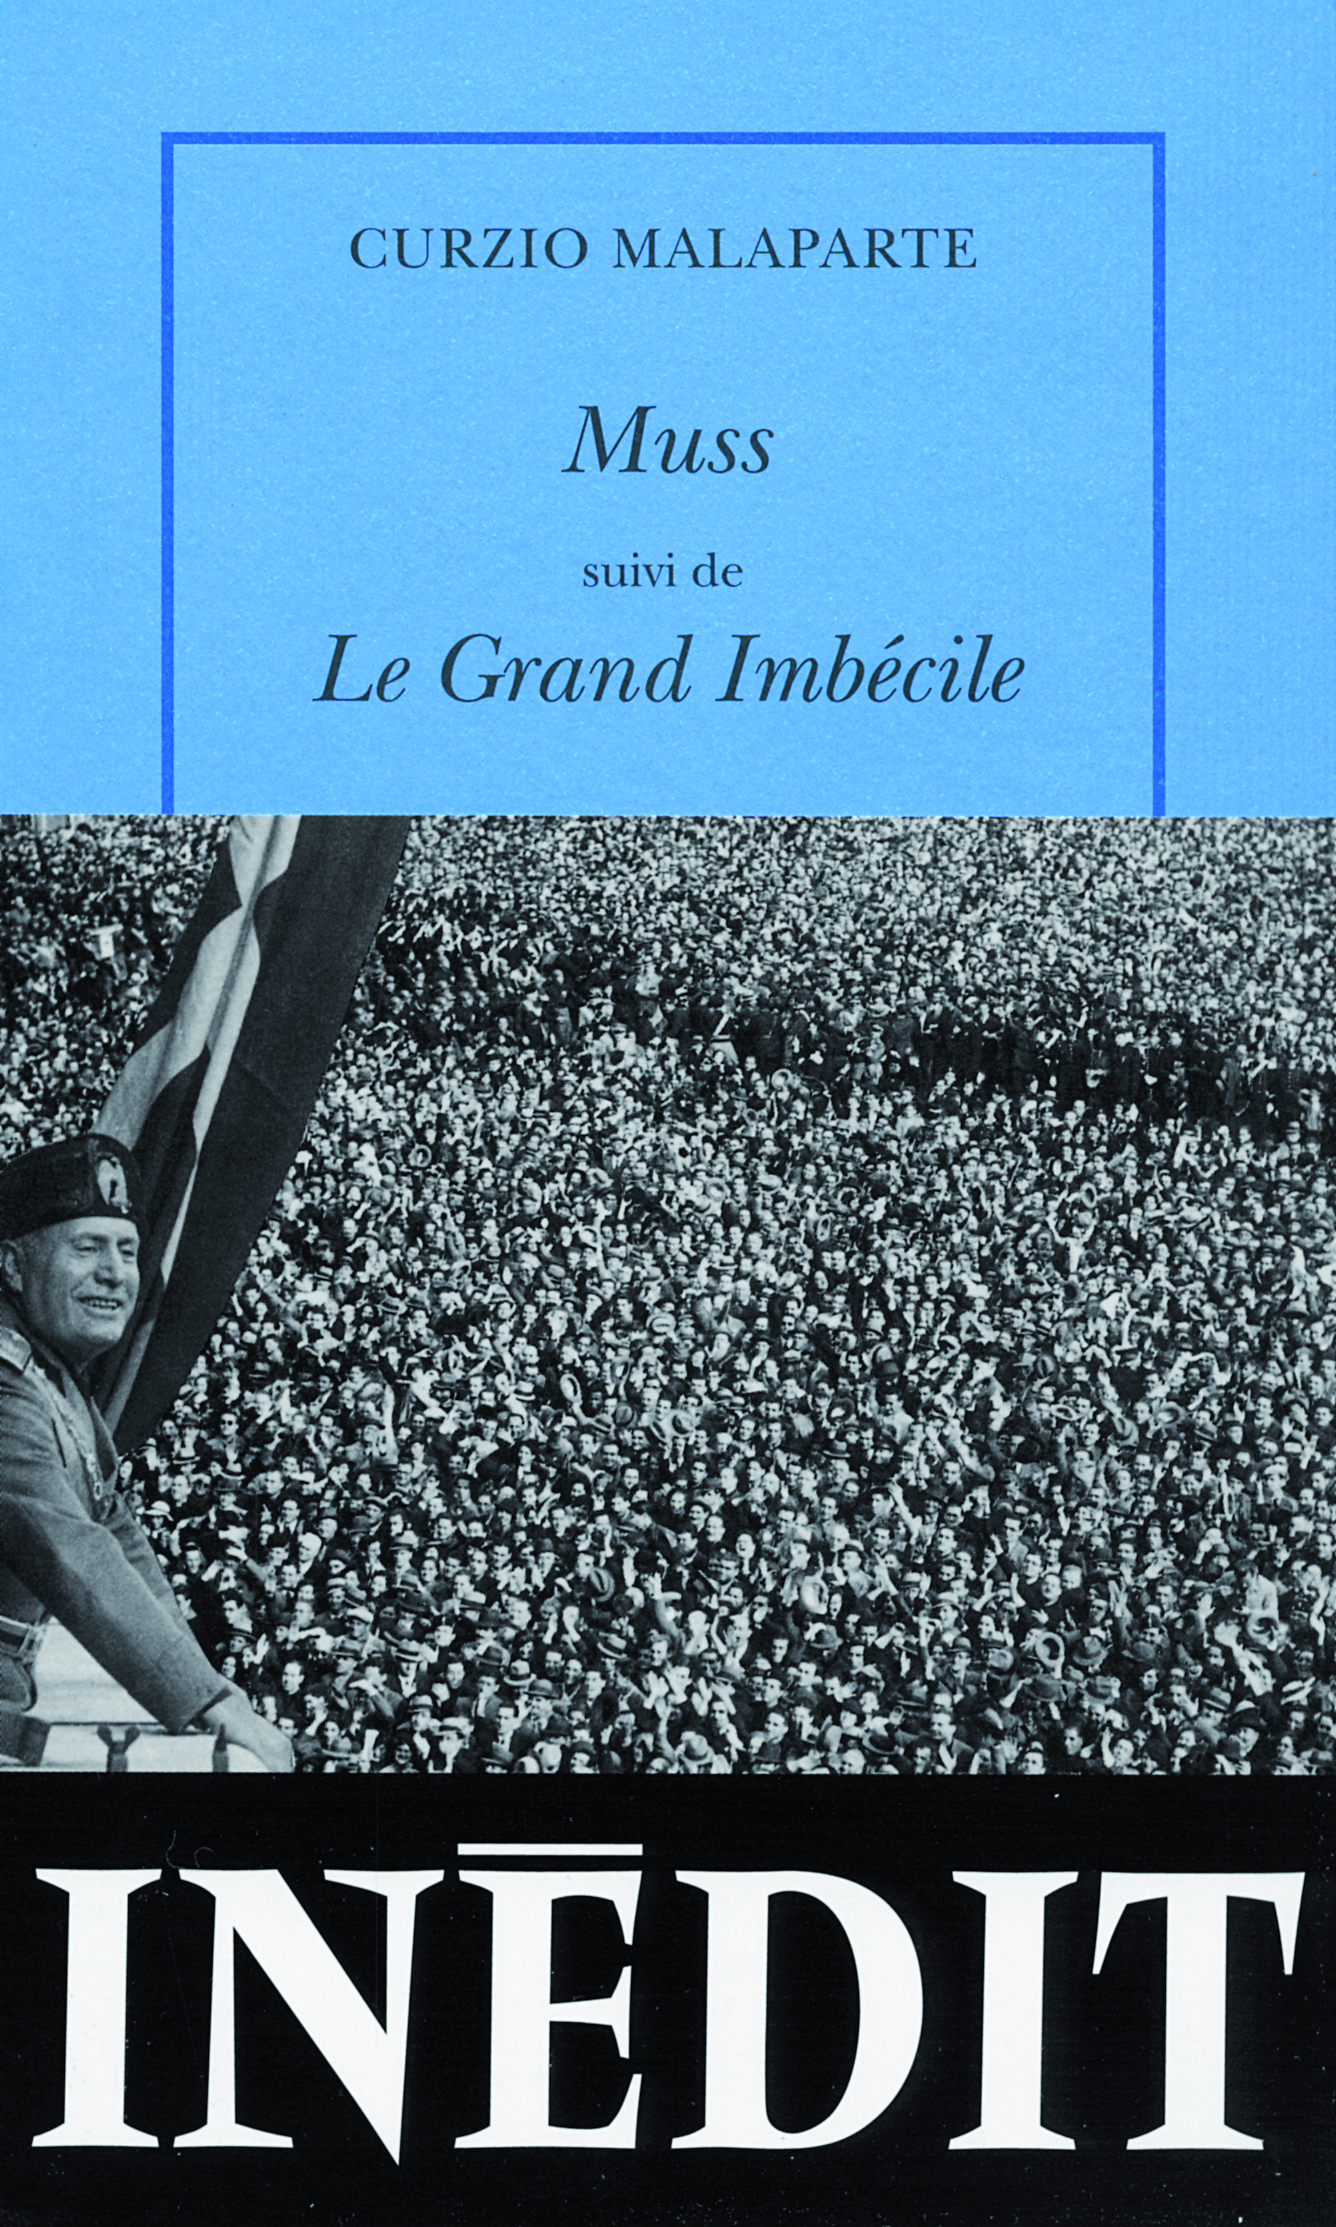 MUSS/LE GRAND IMBECILE